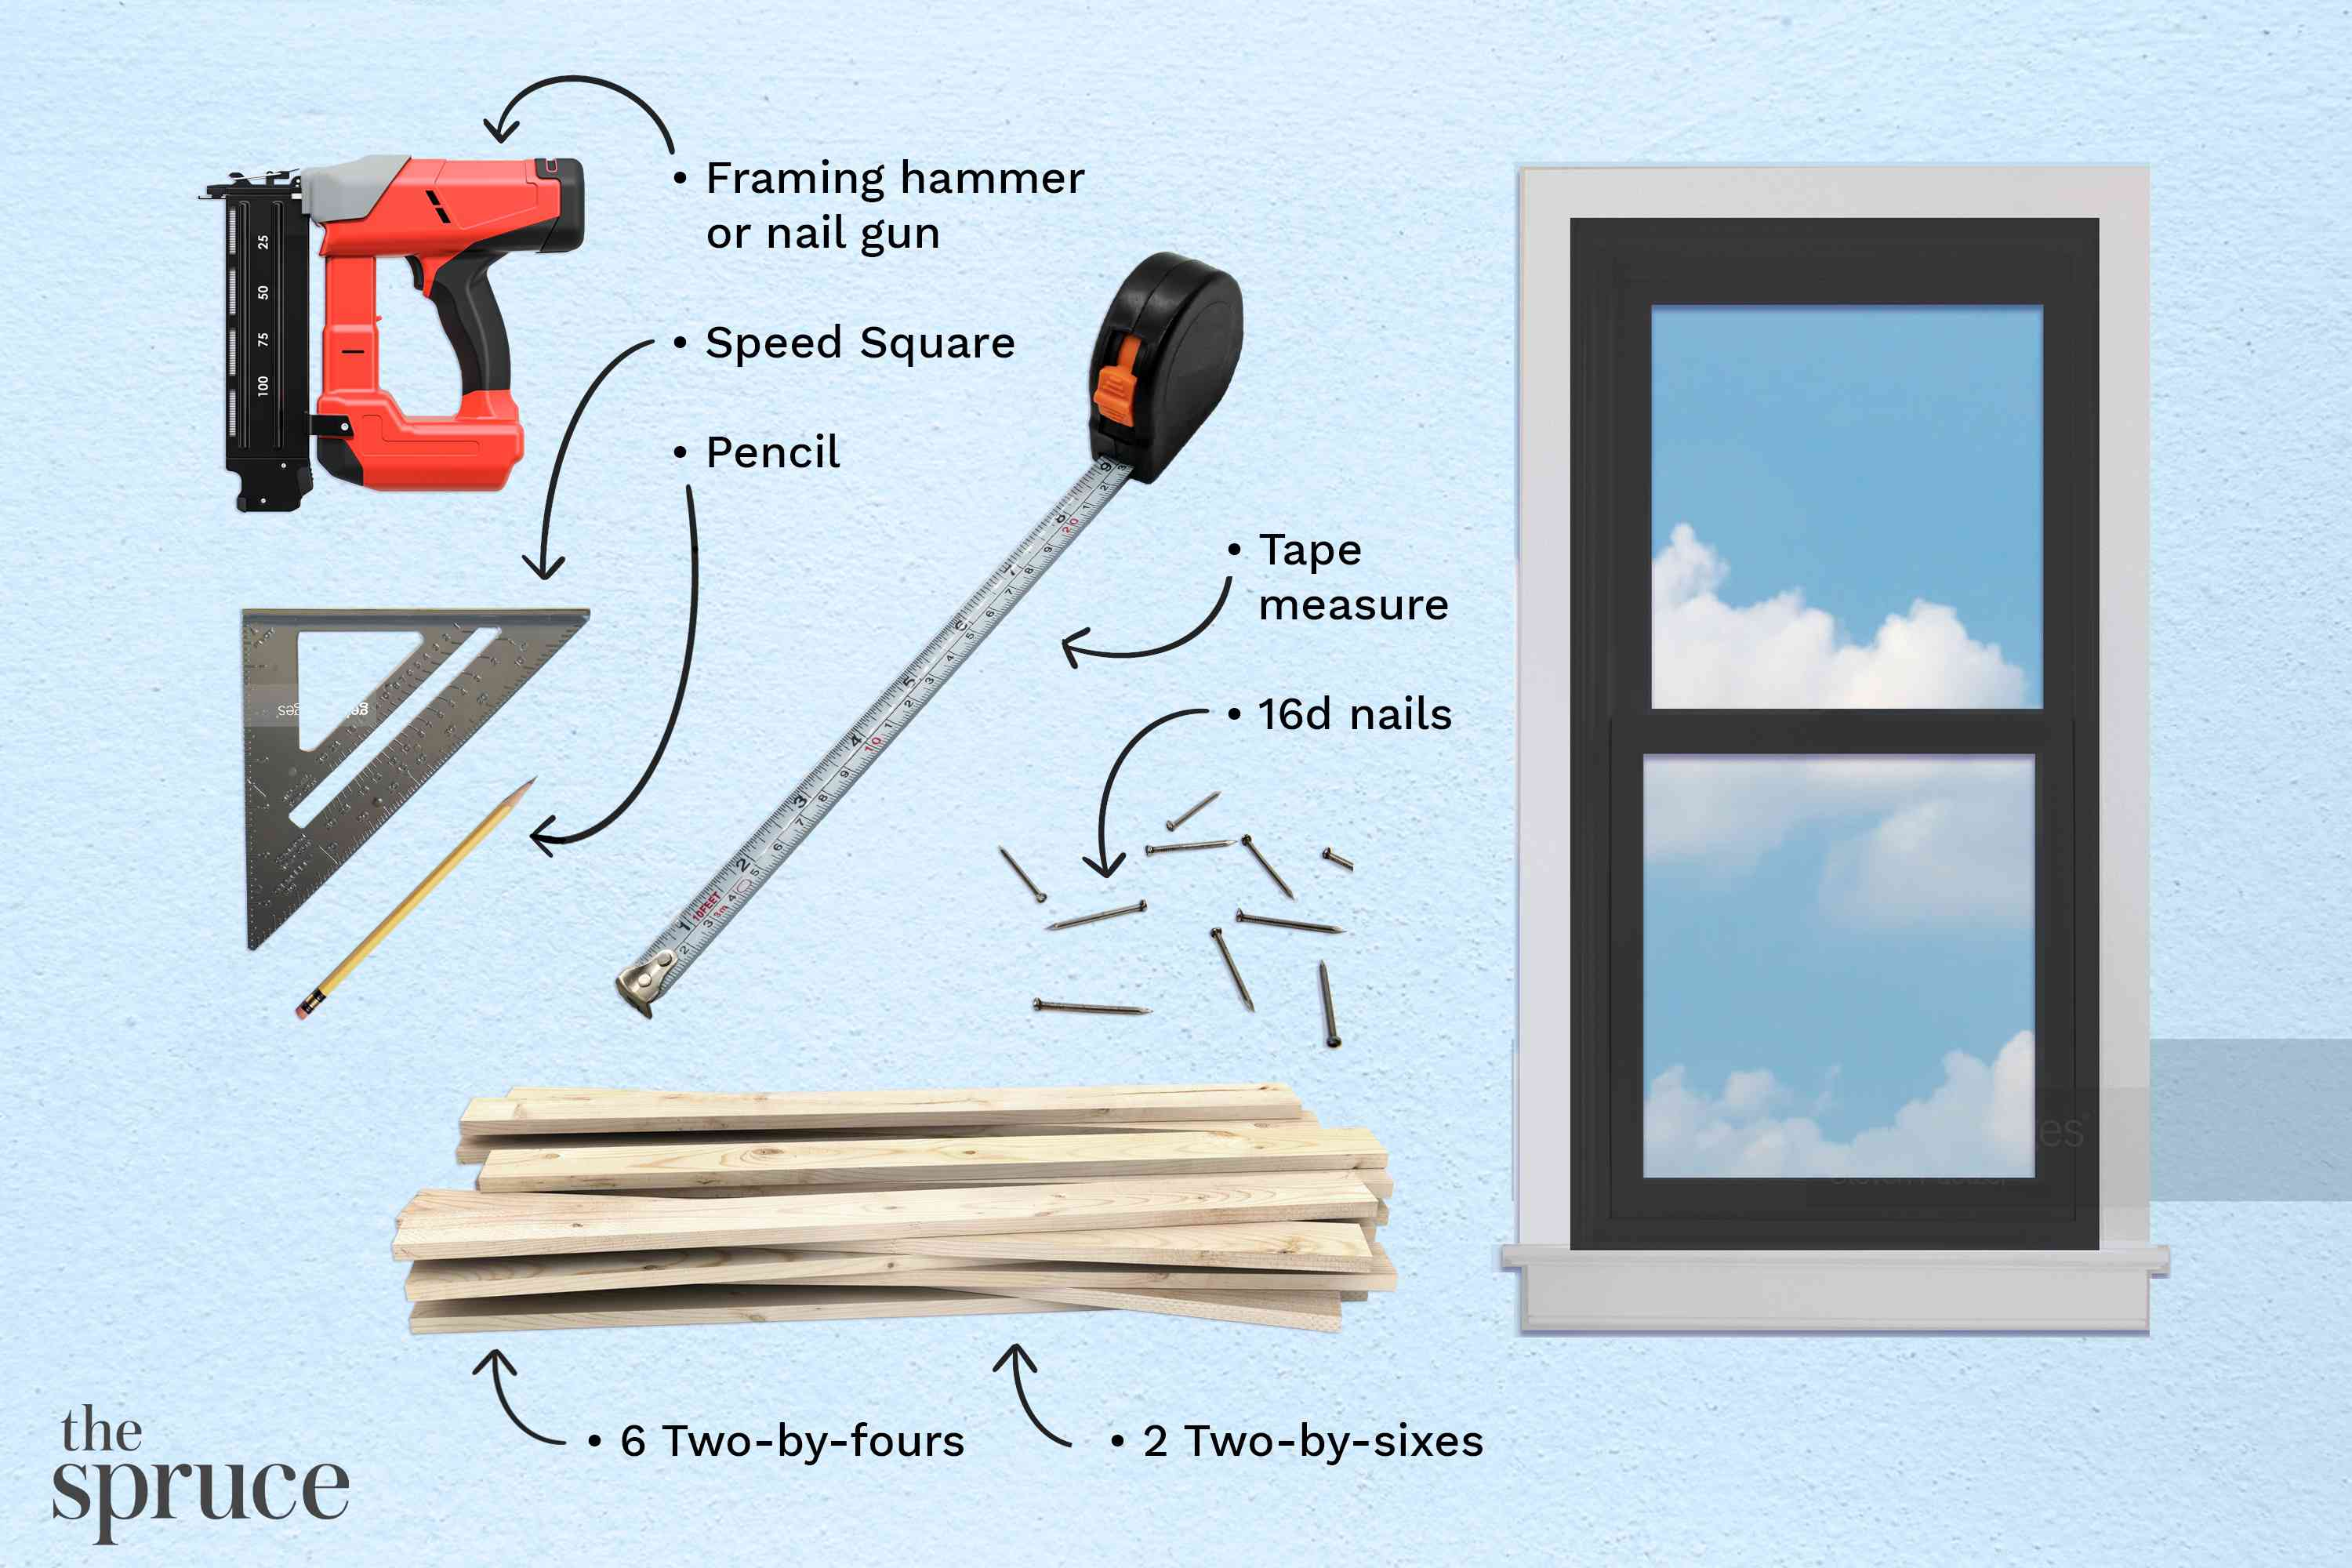 Materials and tools to frame a window illustration